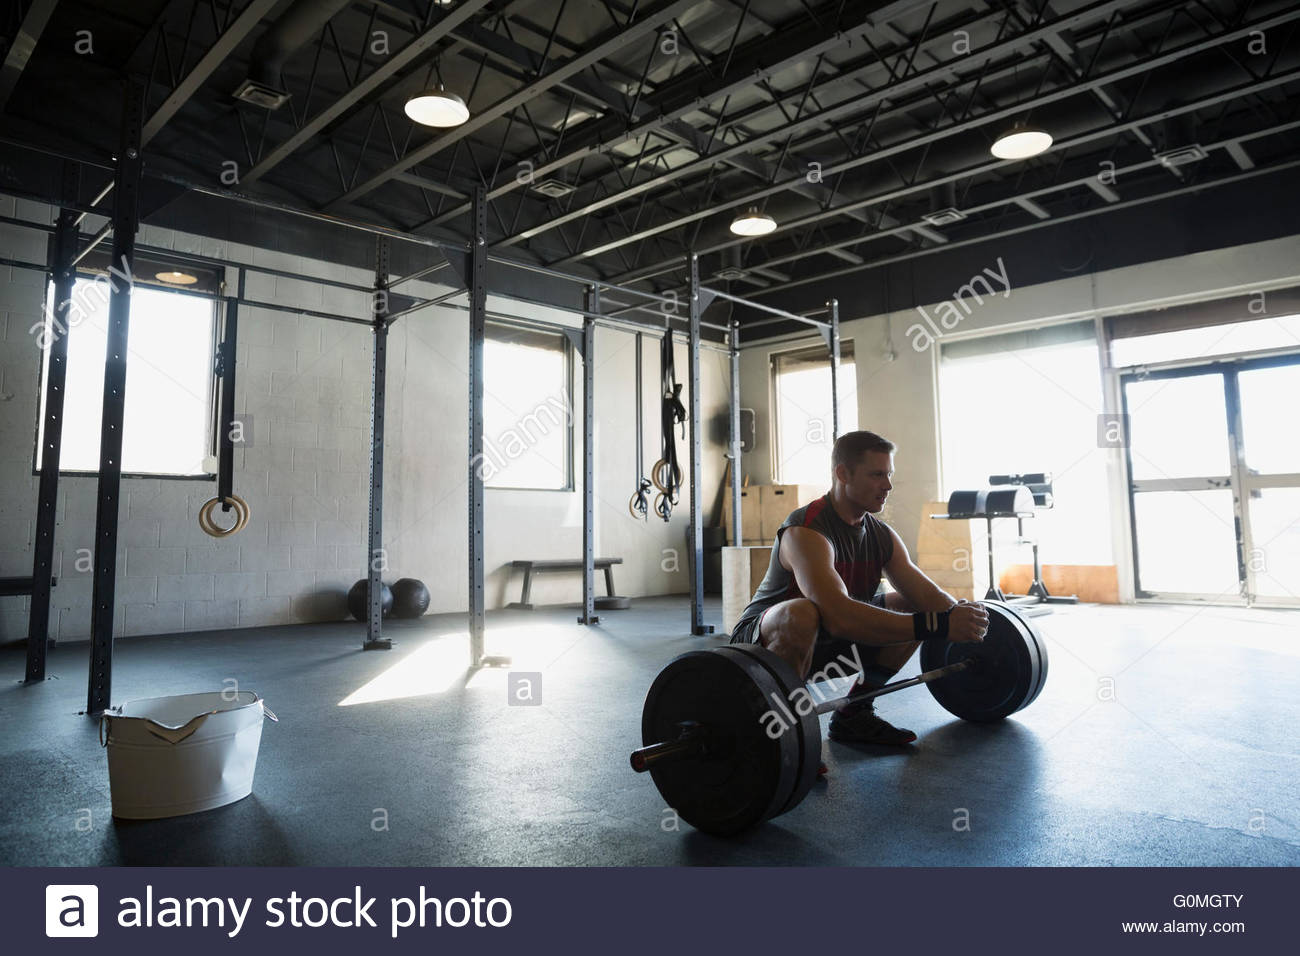 Man squatting over barbell at gym - Stock Image